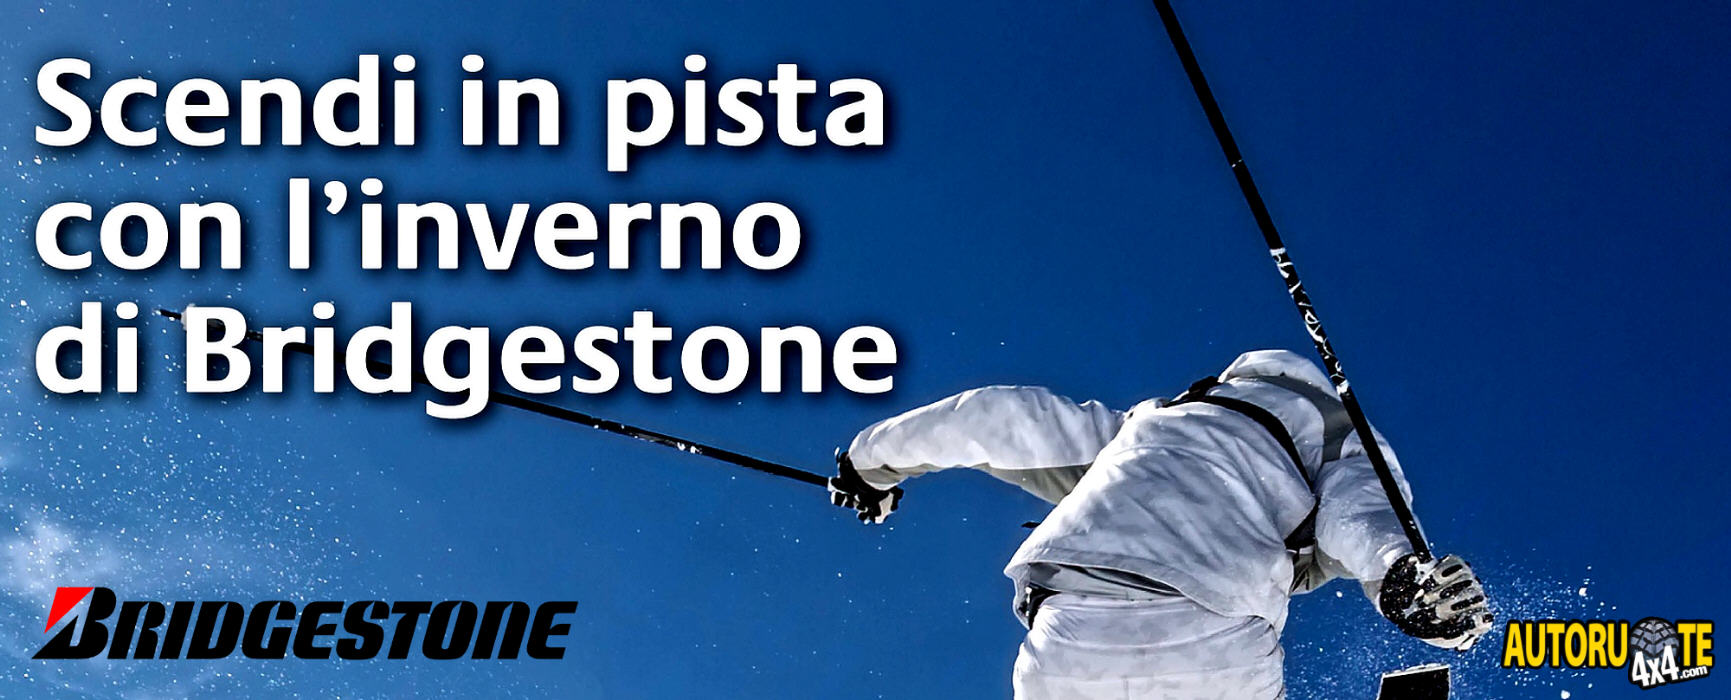 Inverno in sicurezza con Bridgestone